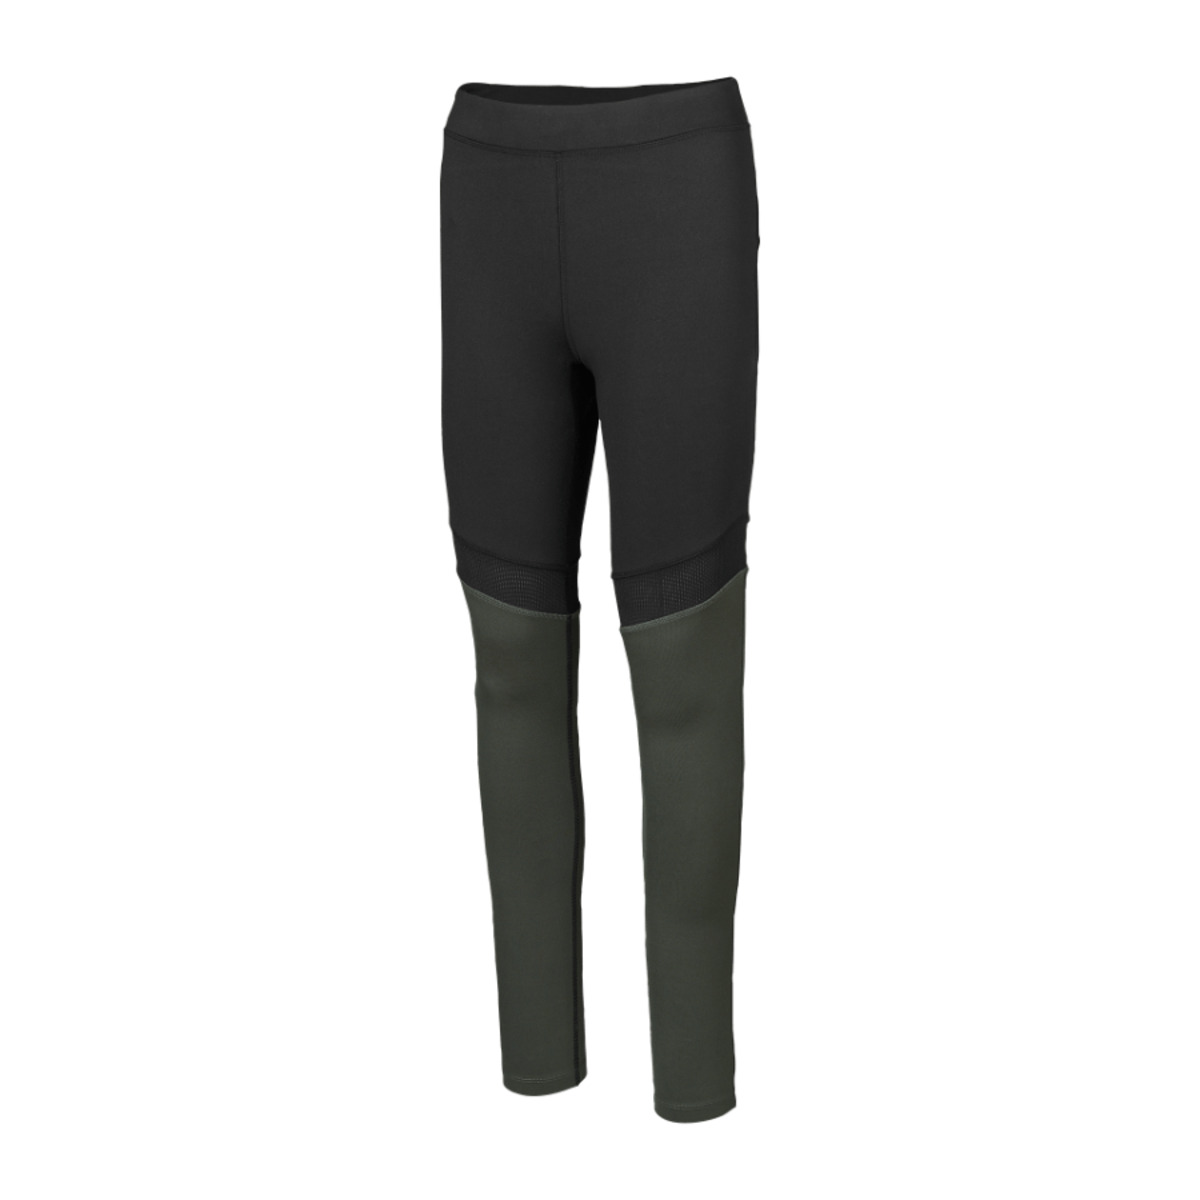 Bild 4 von ACTIVE TOUCH  	   Sport-Leggings